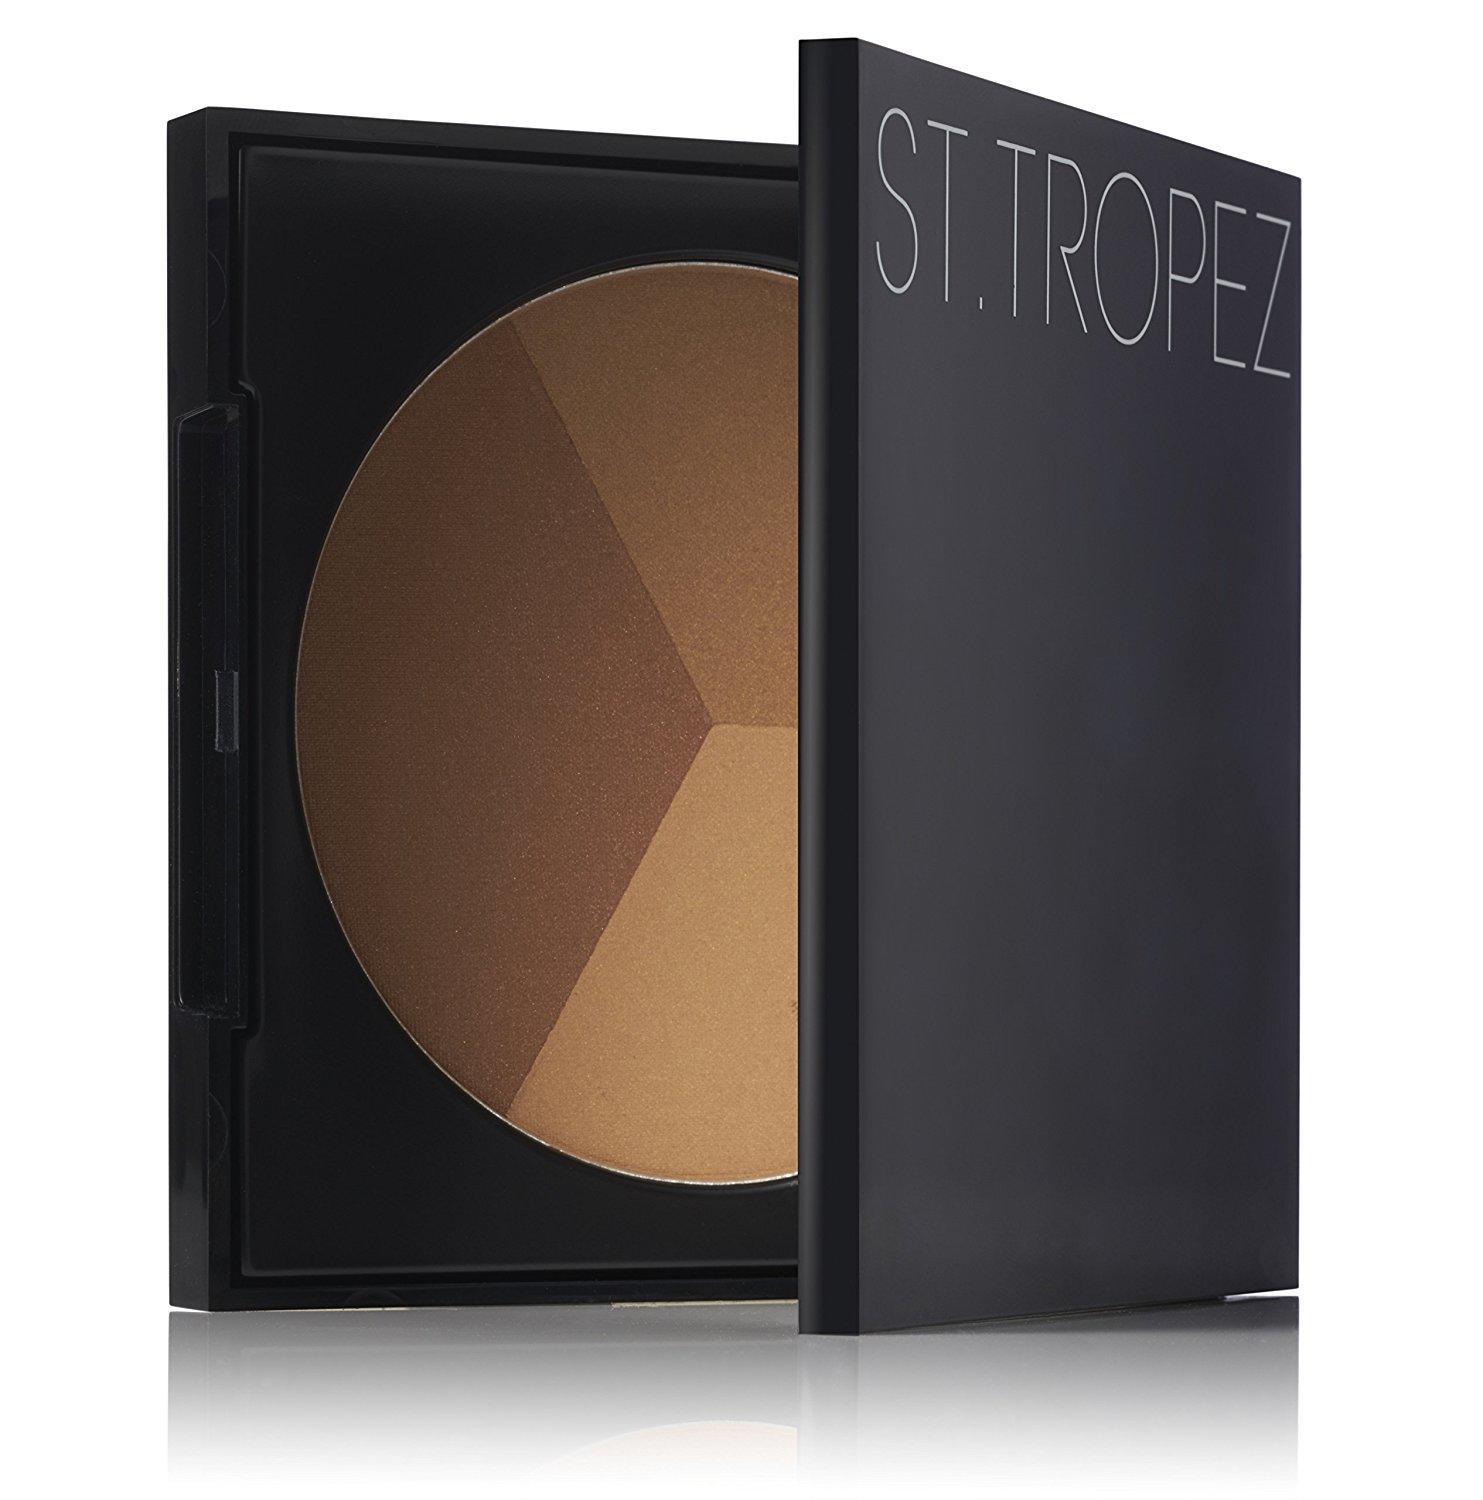 St. Tropez 3-in-1 Bronzing Powder Palette